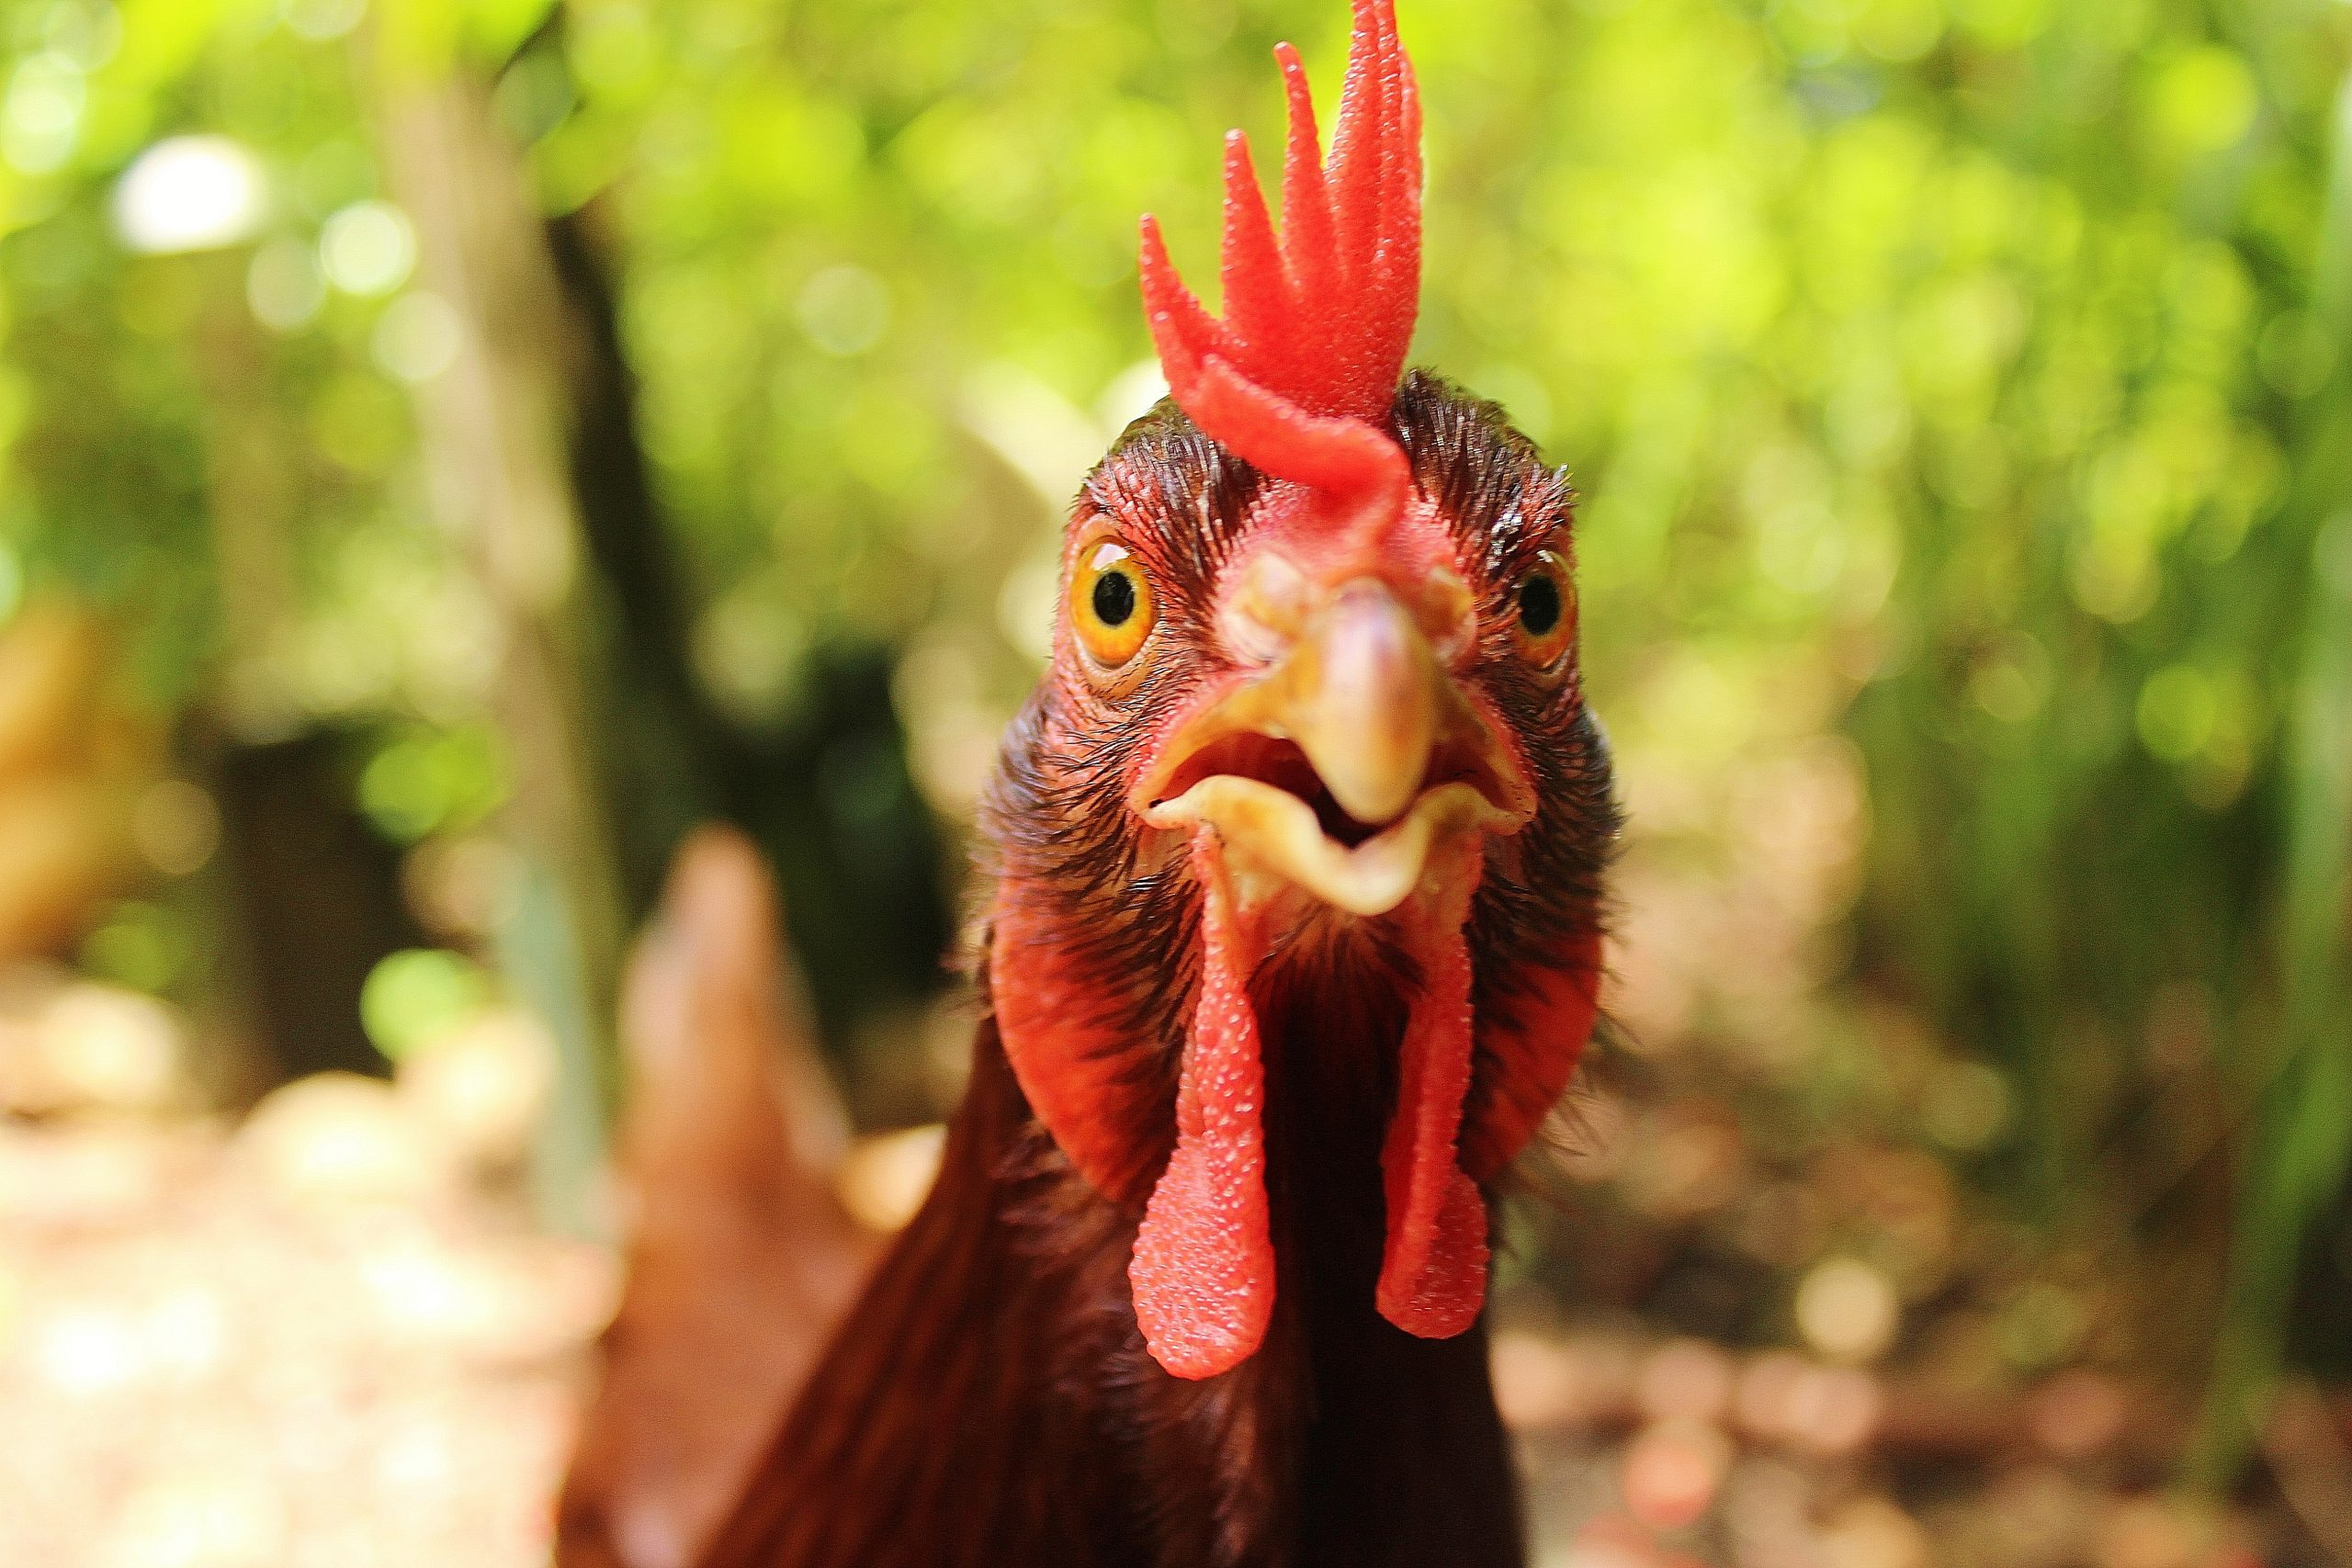 Improve Your Chicken Pics with These 6 Tips